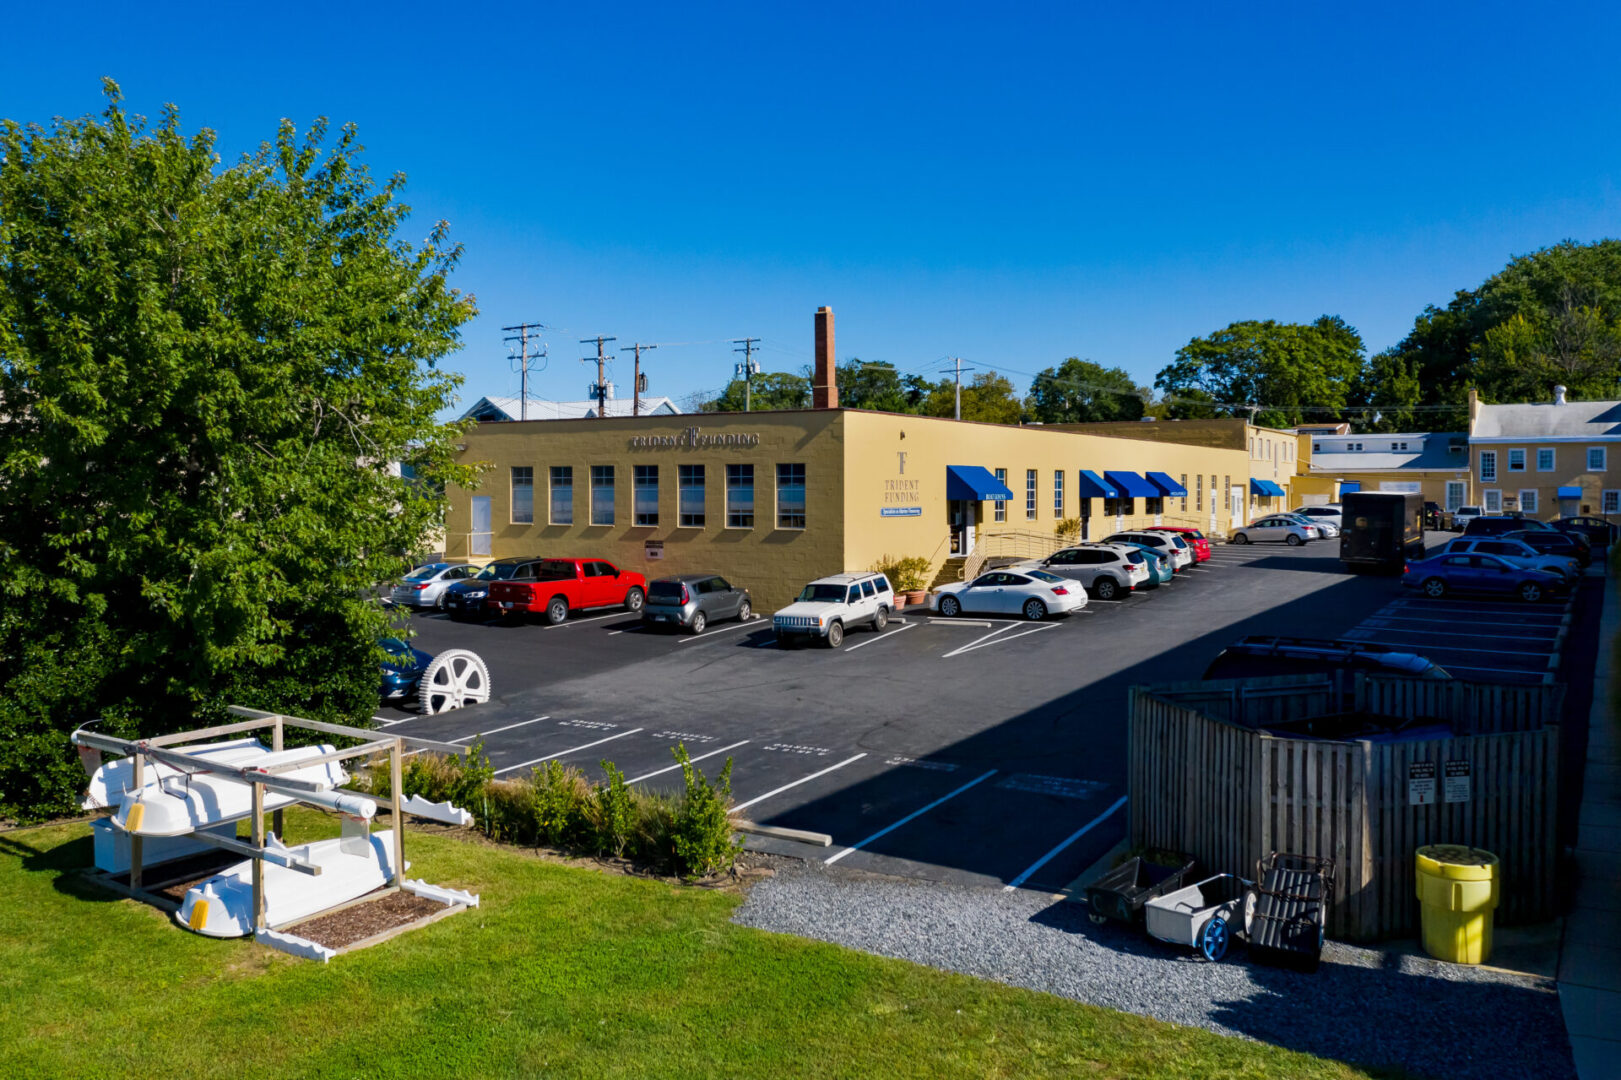 Summer day view of the picnic area and office waterfront complex at 222 Severn/W&P Nautical / The Yard on Spa Creek in Annapolis.